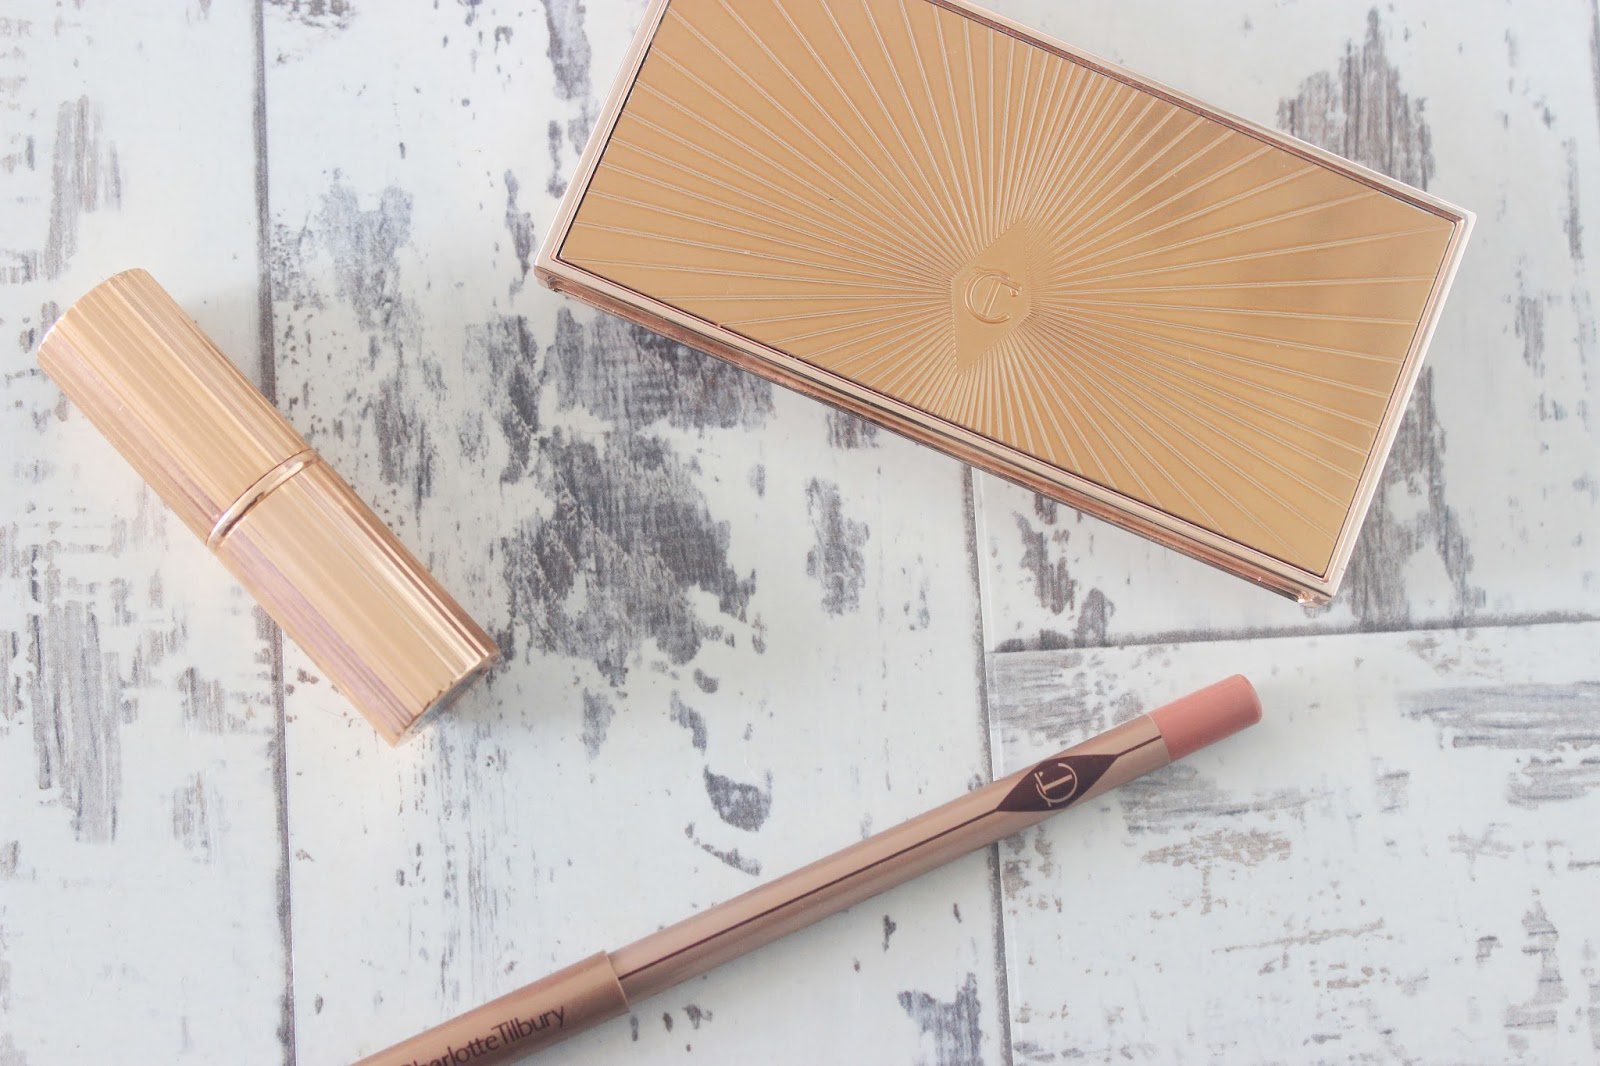 Charlotte Tilbury, Bronze and Glow, Bond Girl, Pillow Talk